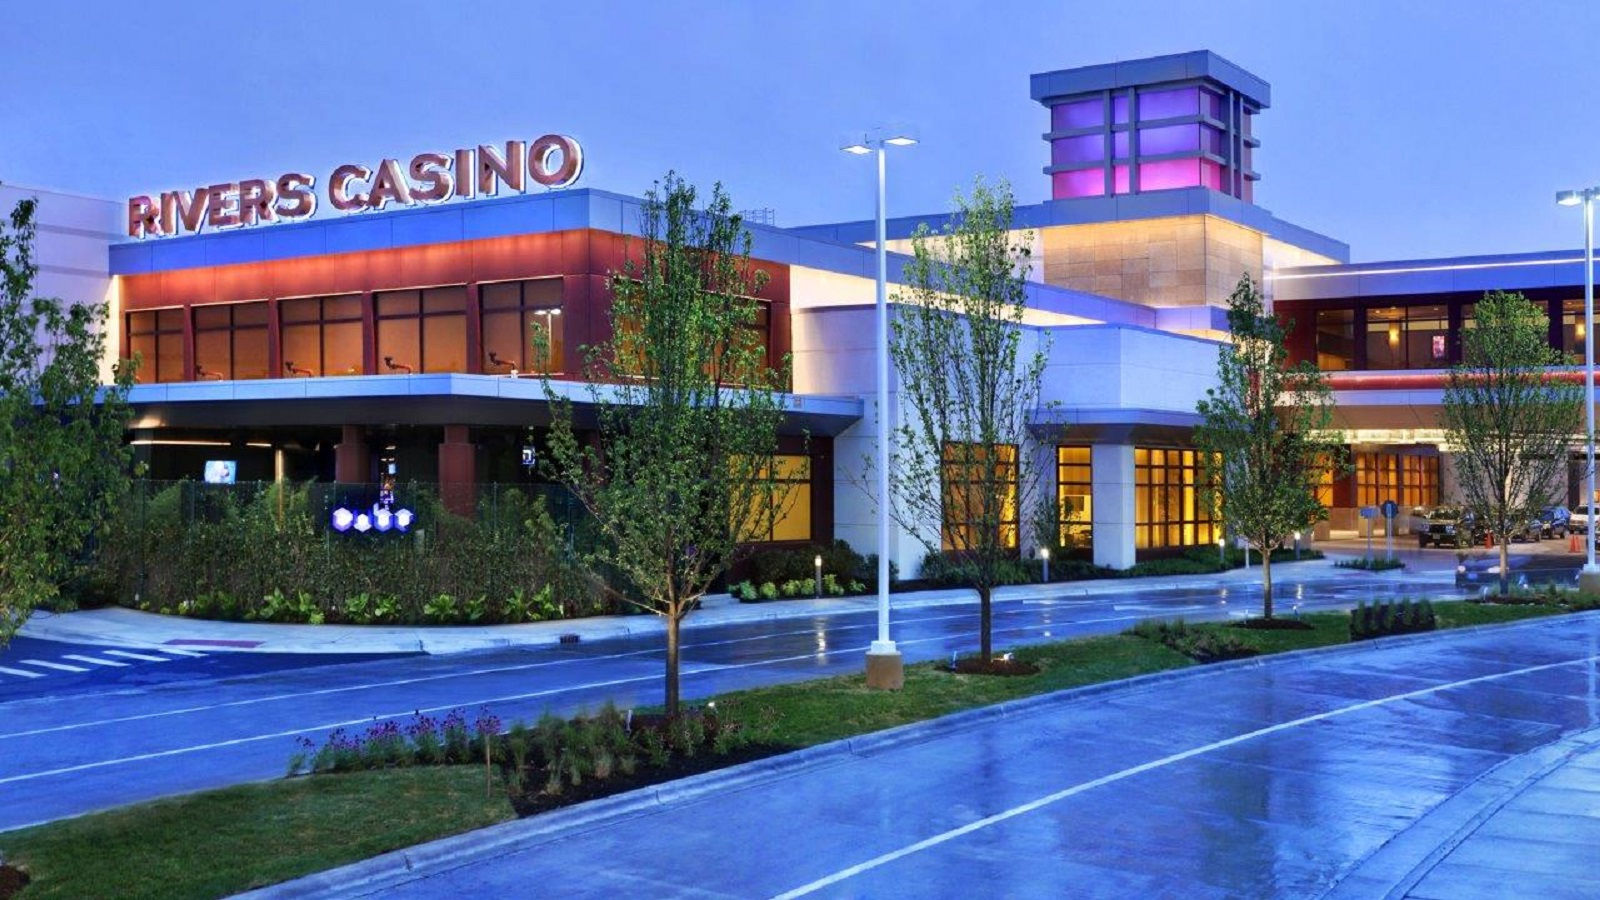 Chicago Suburbs Rivers Casino